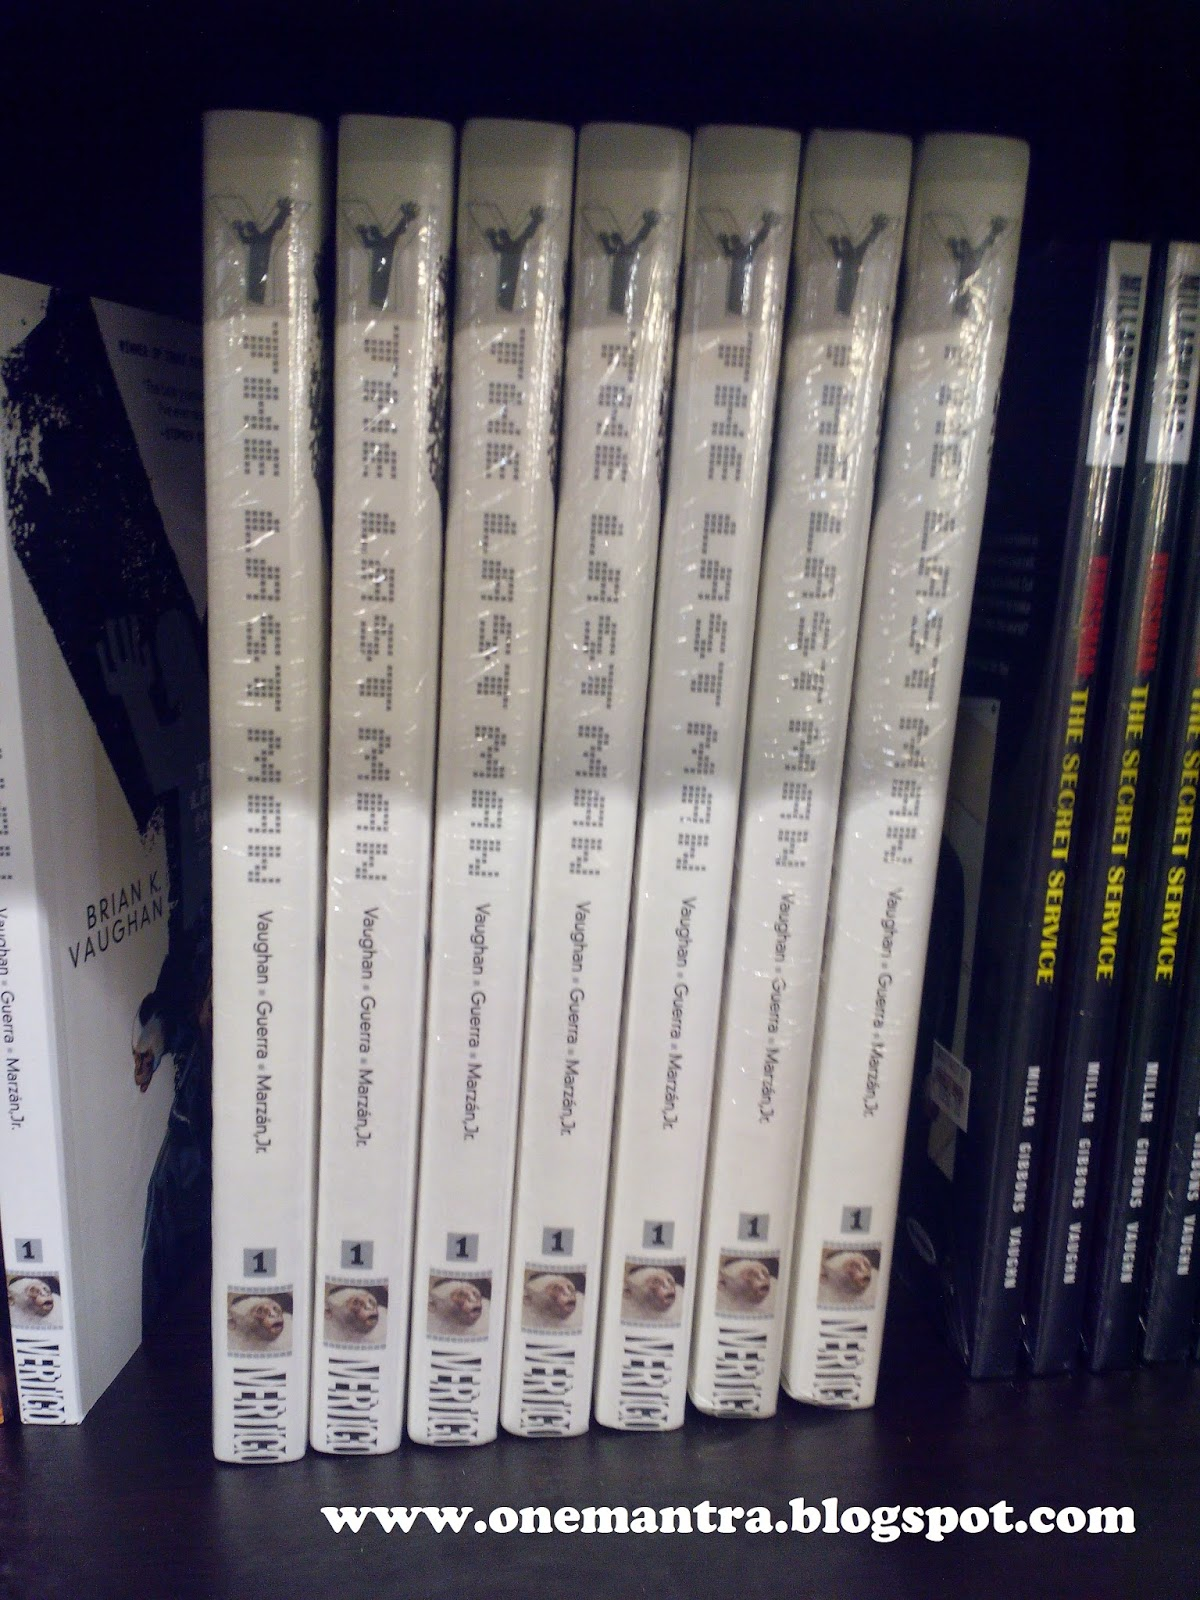 Tons of copies of the Deluxe Edition of Vol 1 of Y: The Last Man in  Hardcover at the FullyBooked booth